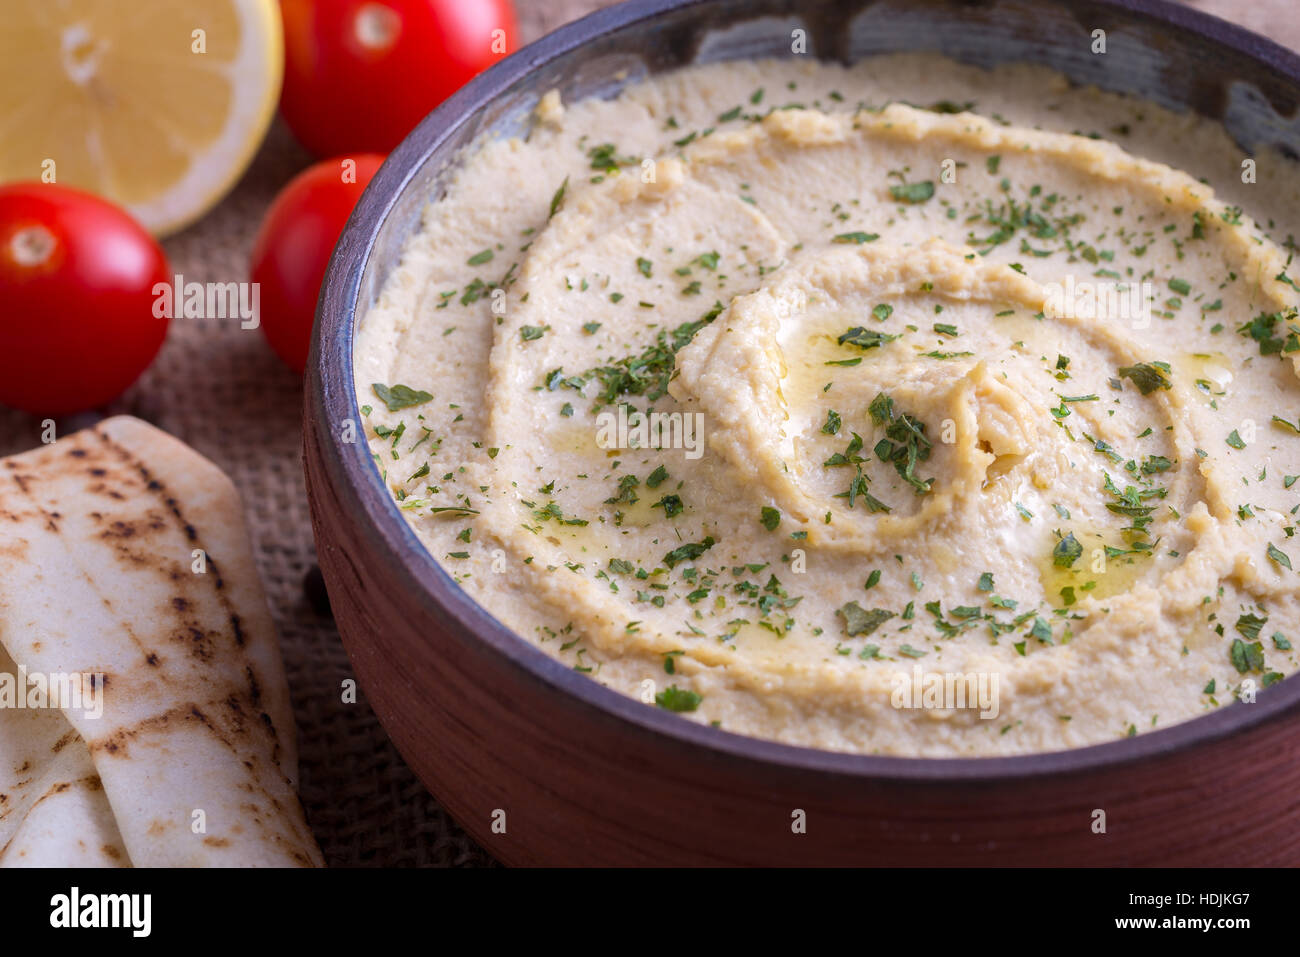 Humus in homemade bowl and vegetable. - Stock Image